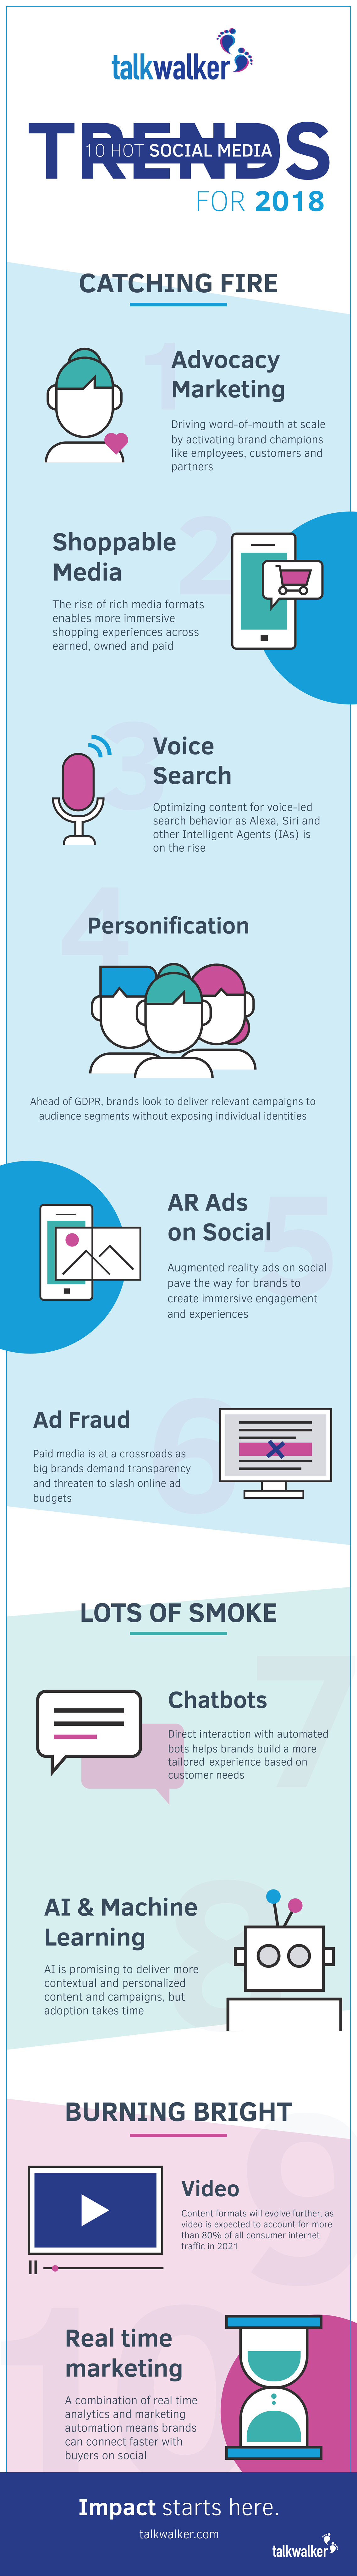 infographic_social-media-trend.png